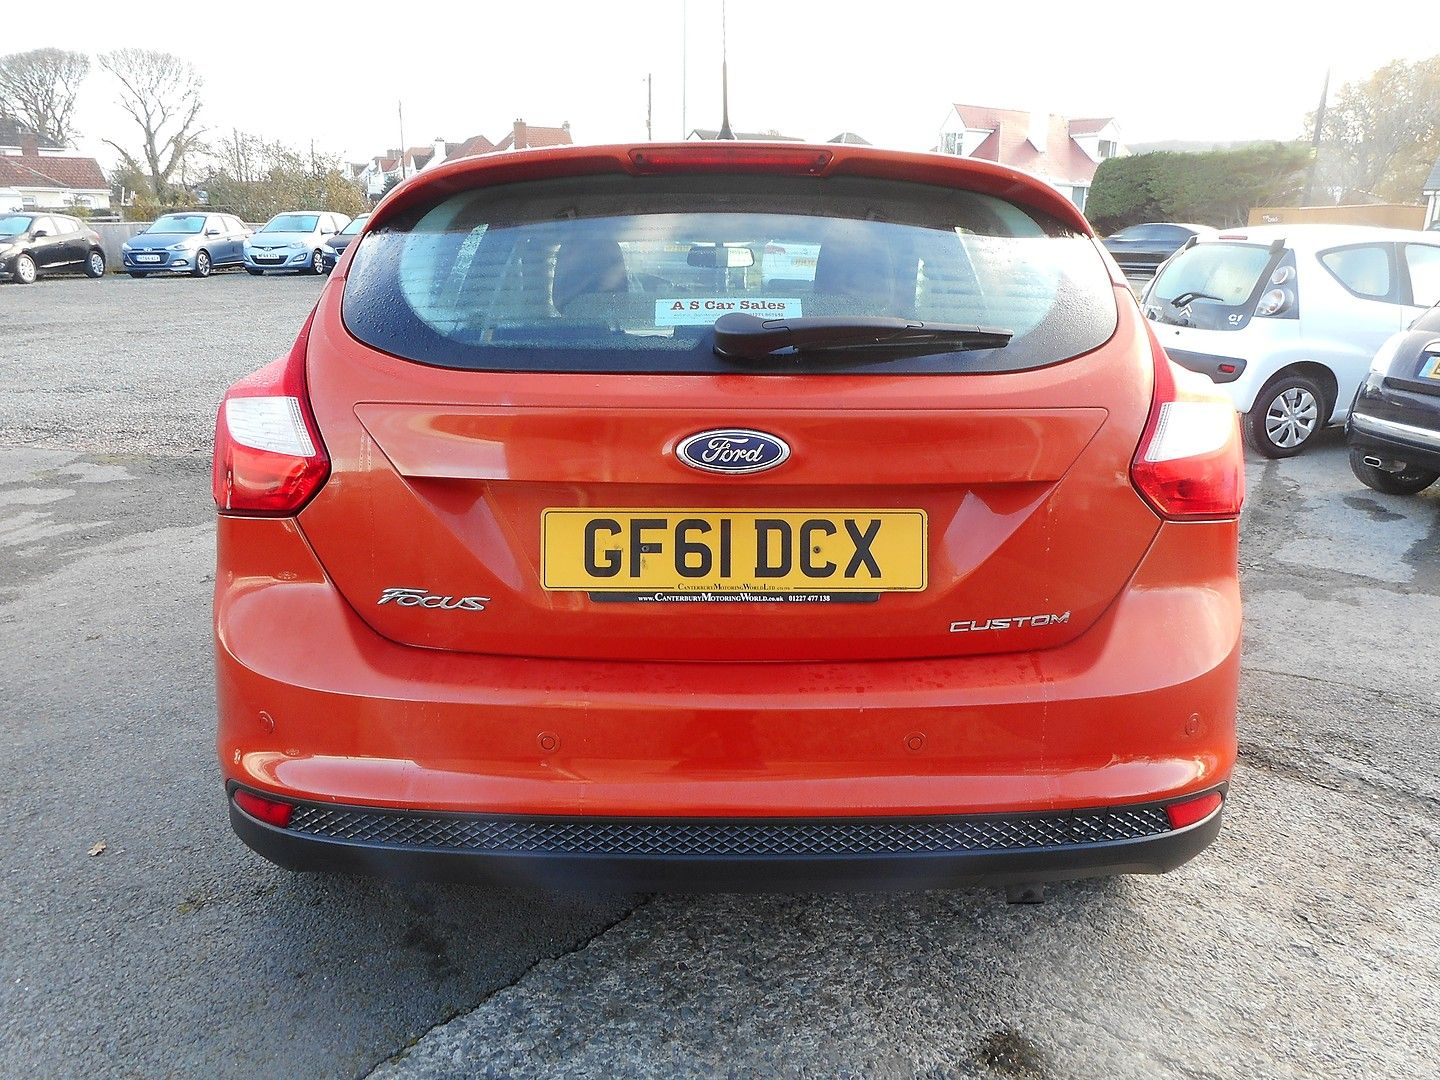 FORD Focus 1.6 Zetec Auto (2011) - Picture 15